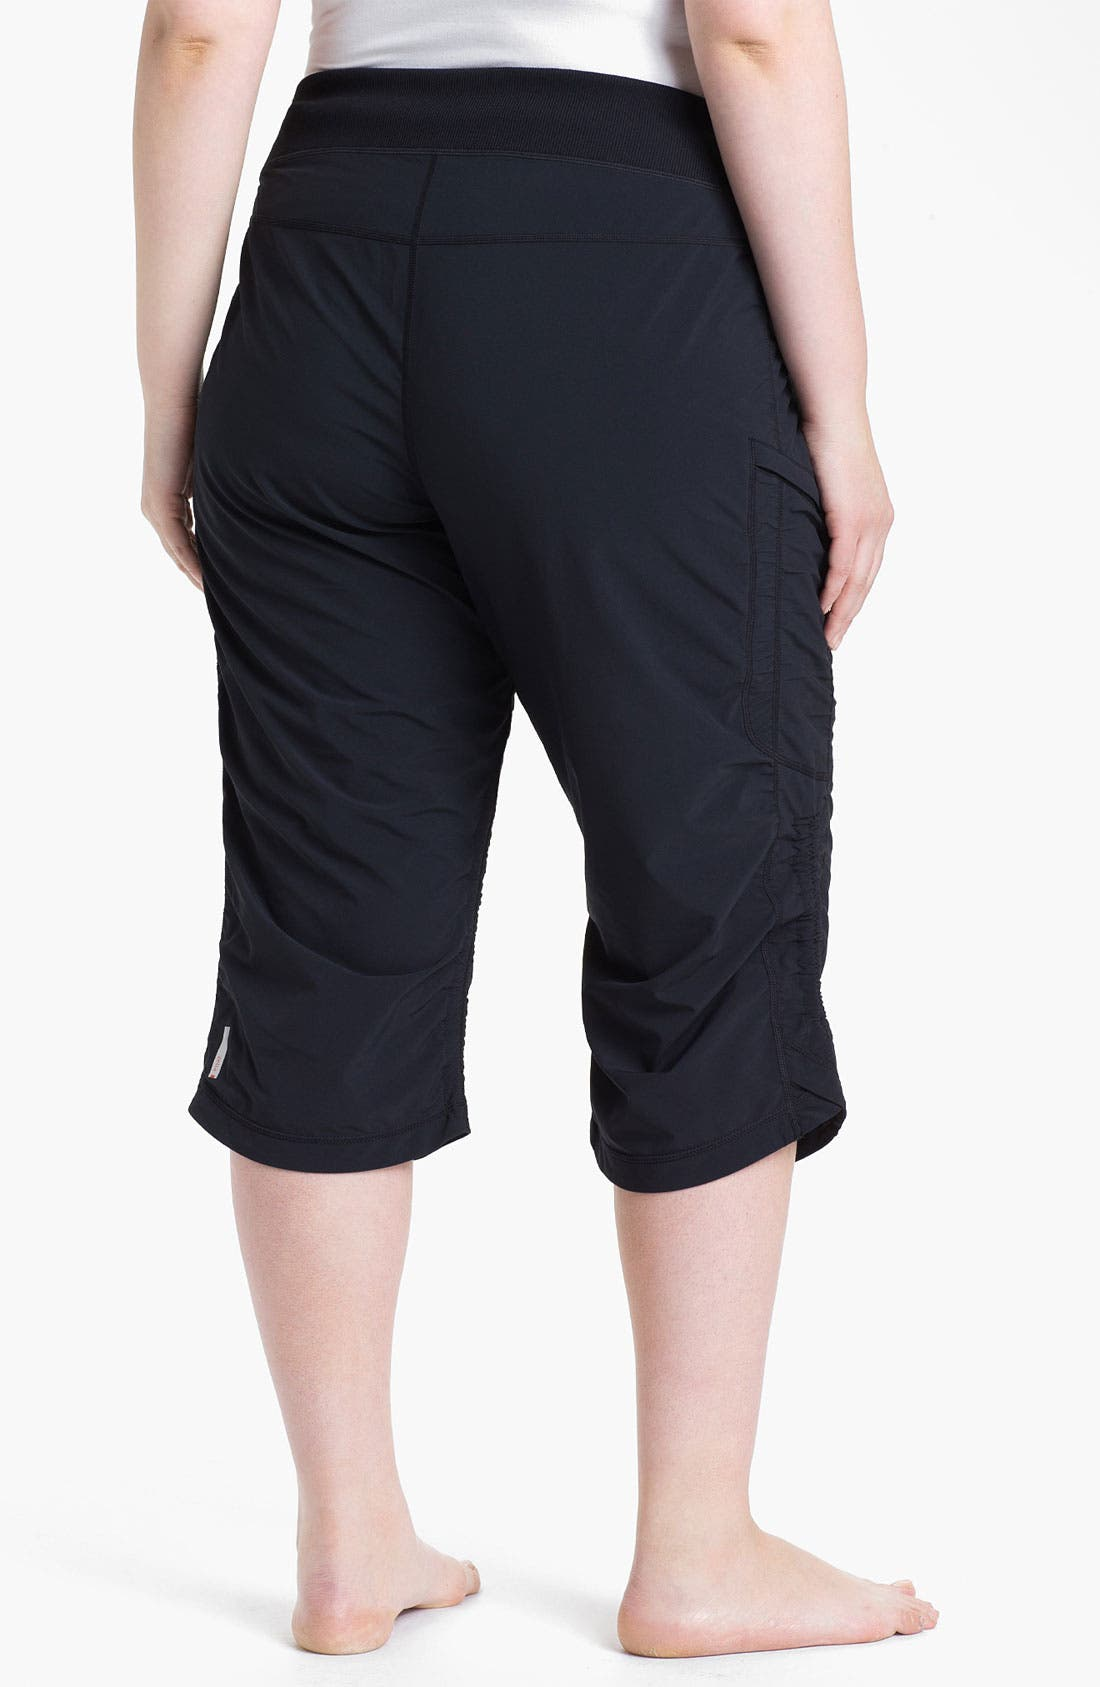 Alternate Image 2  - Zella 'Move It' Capris (Plus Size)